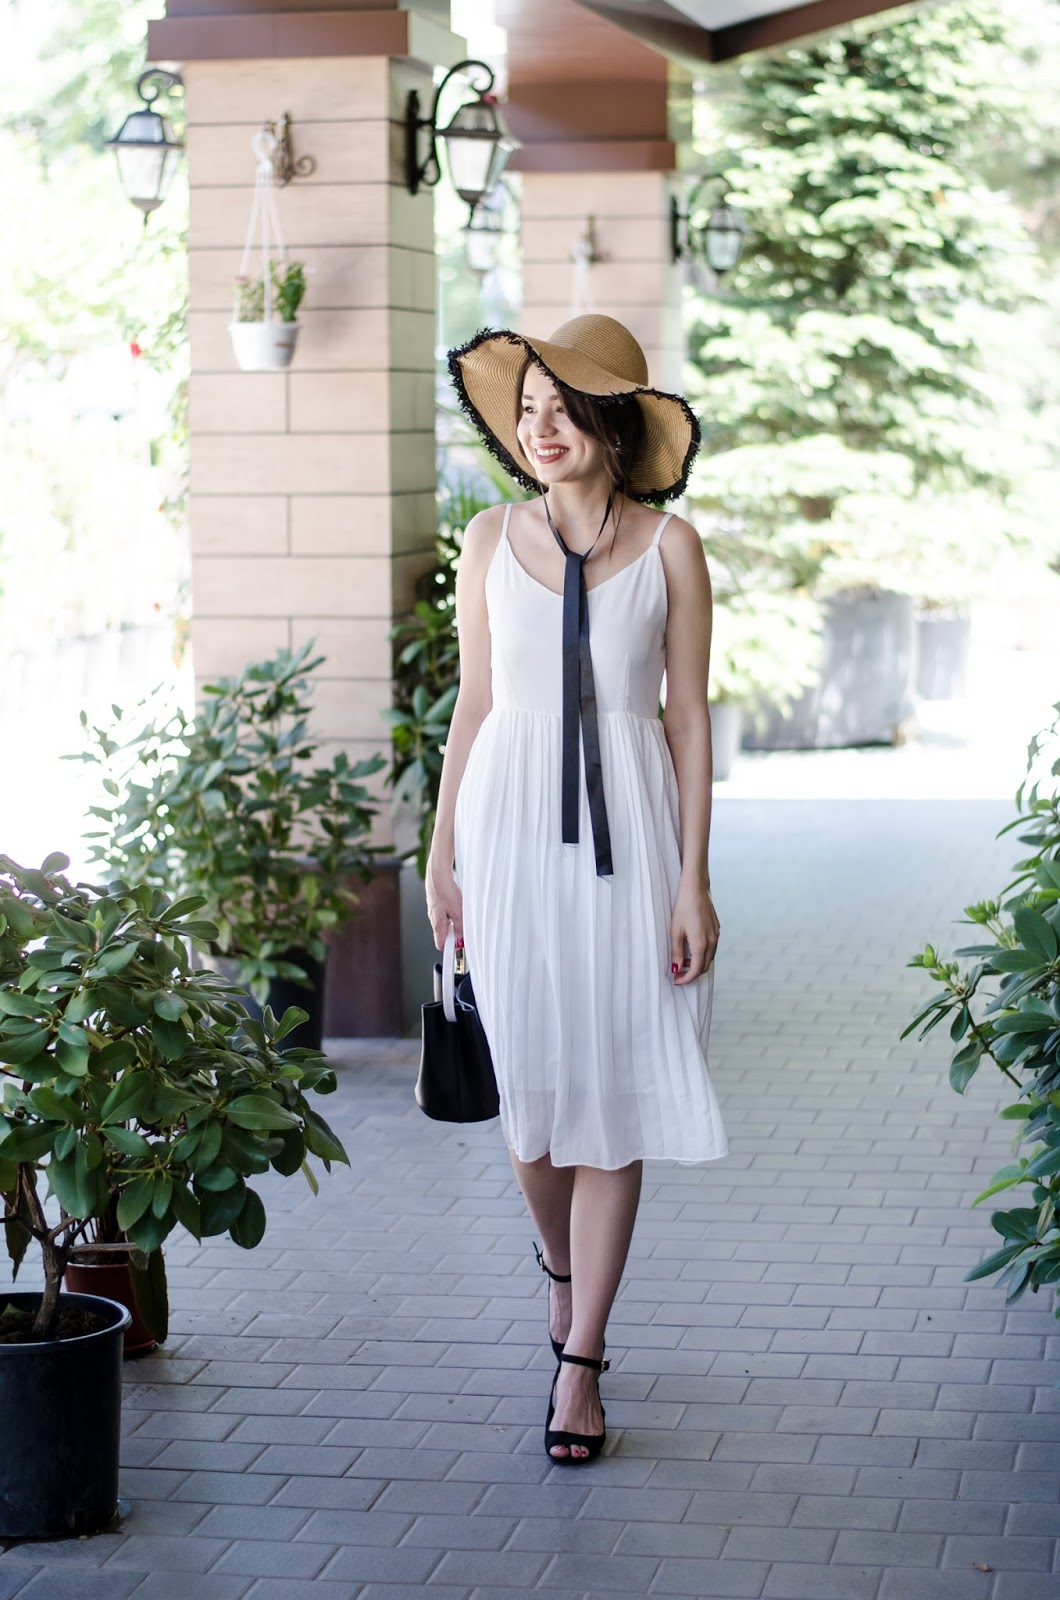 diyorasnotes diyora beta fashion blogger style outfitoftheday lookoftheday pleated midi dress white dress heels oversized straw hat